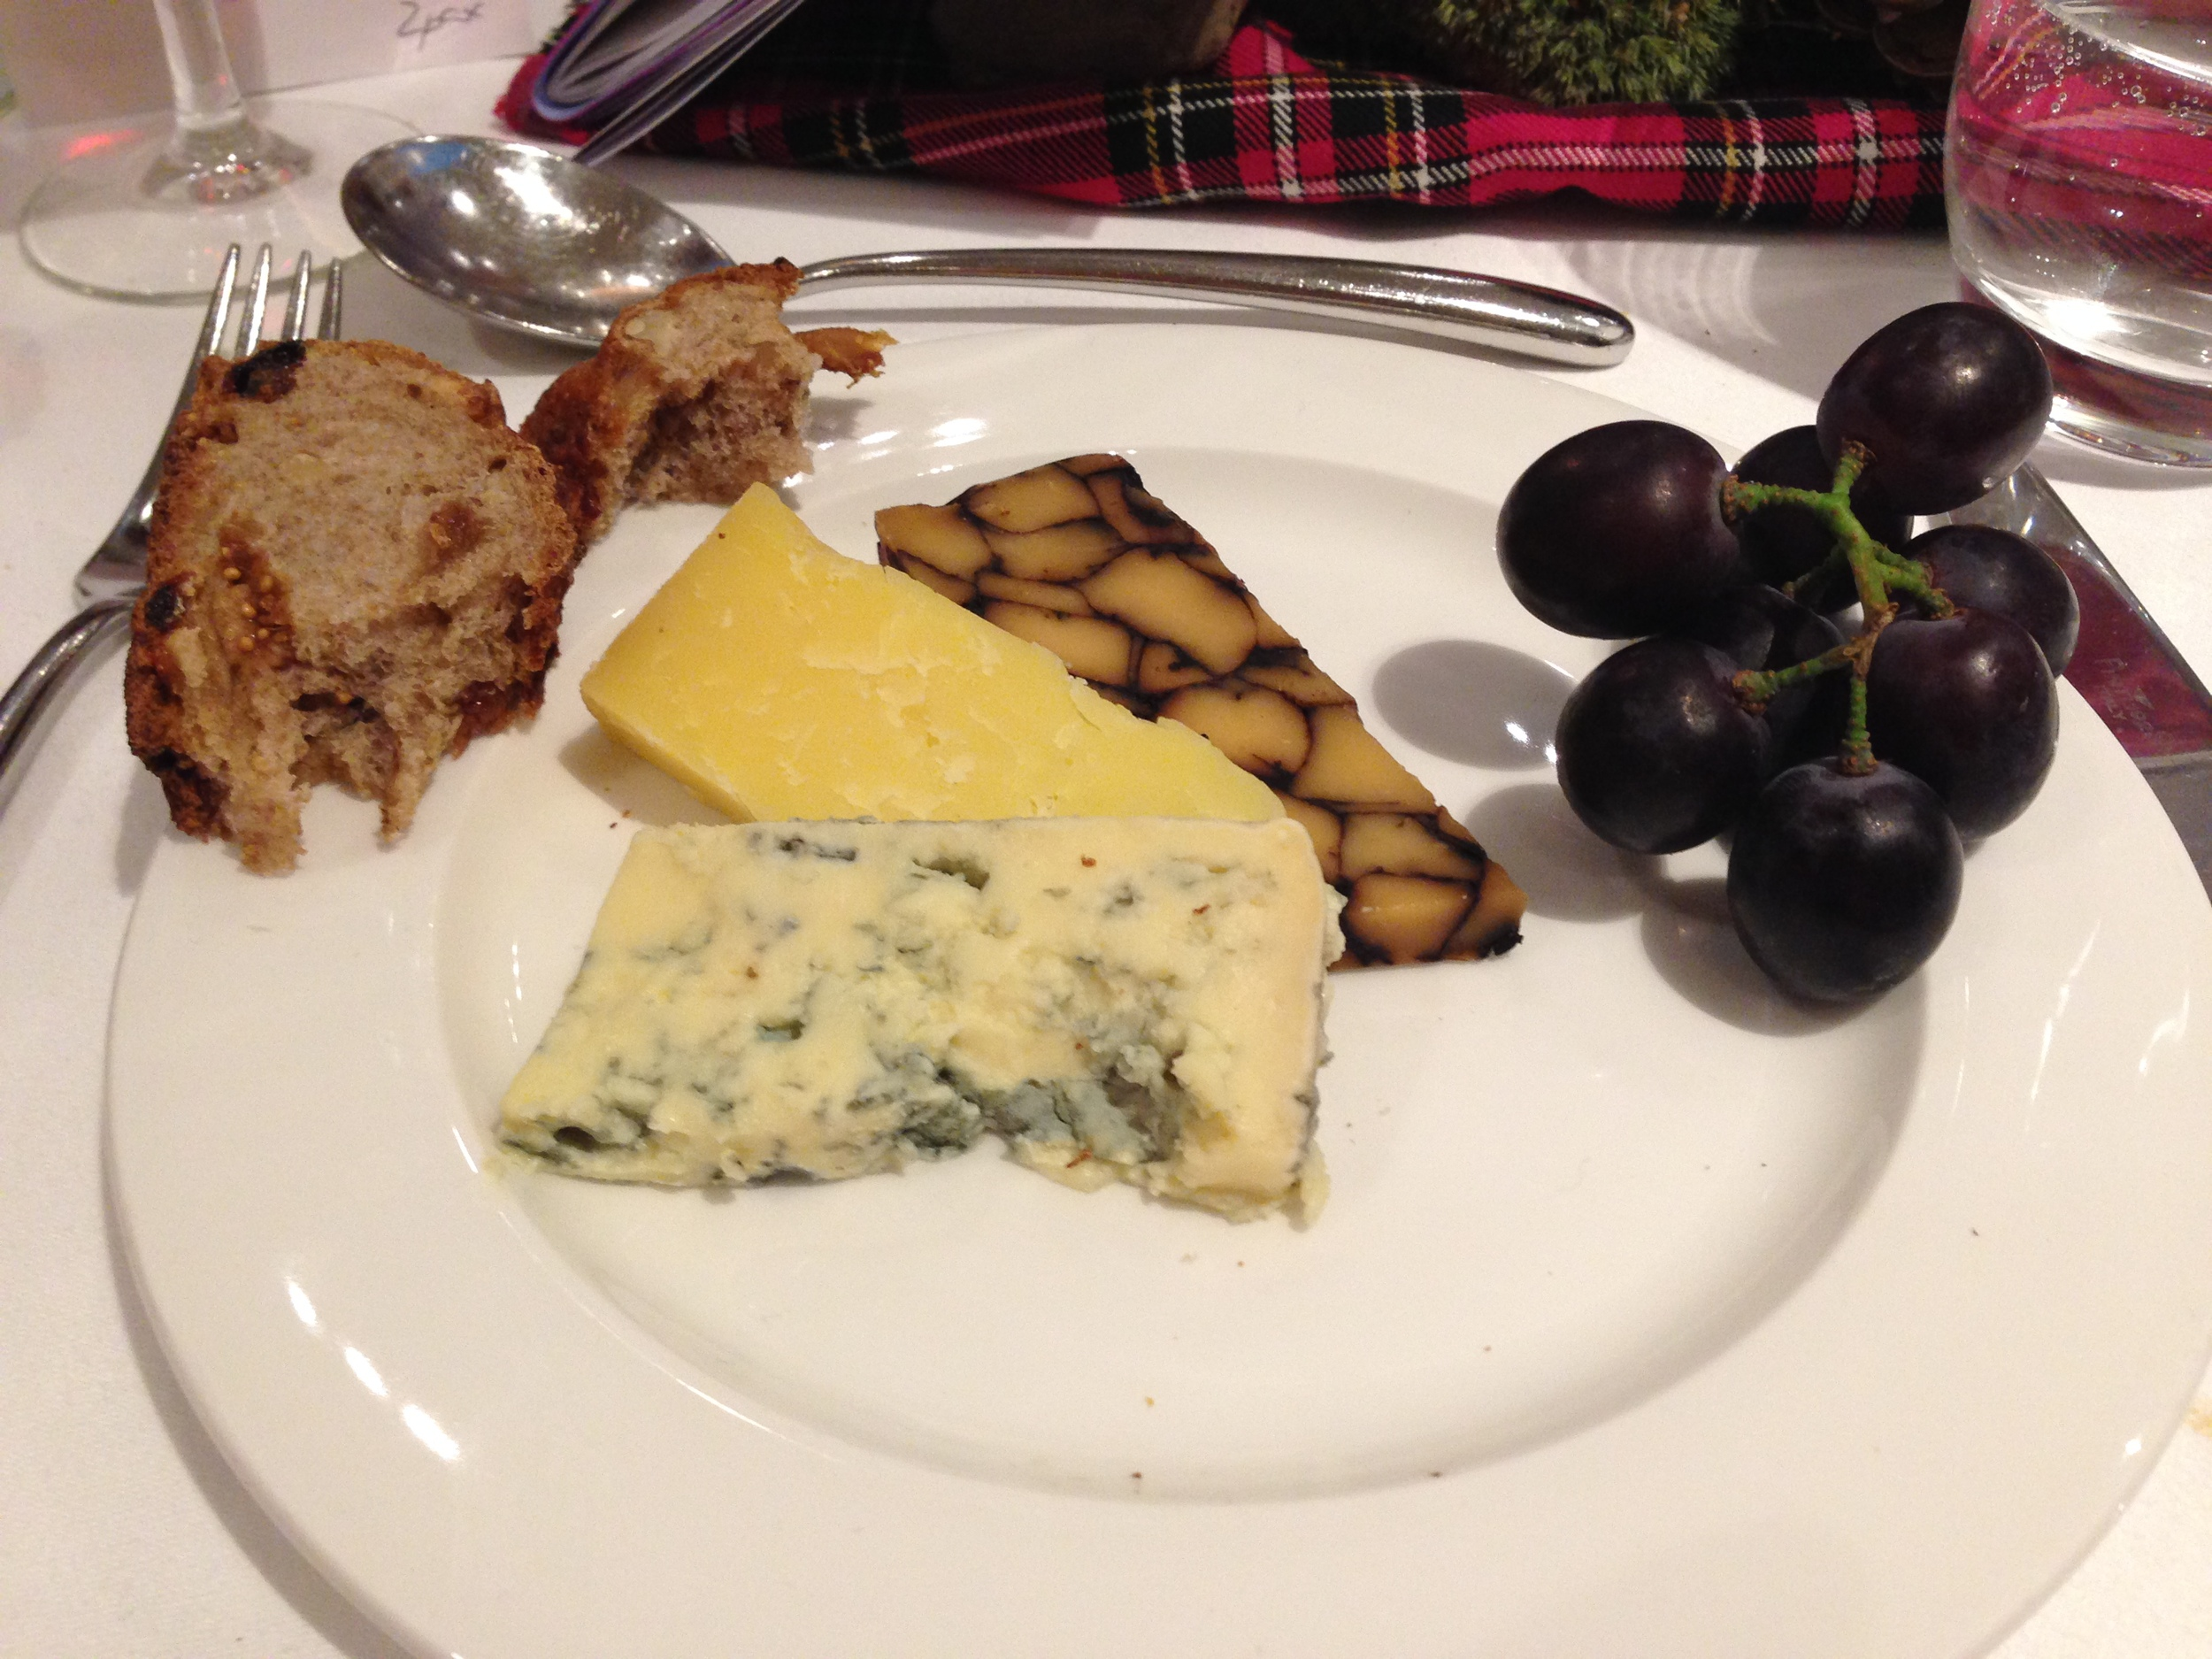 Cheese selection of Teviotdale, Bonchester and Lamark Blue served with Porto Tawny 10 years, Taylor's